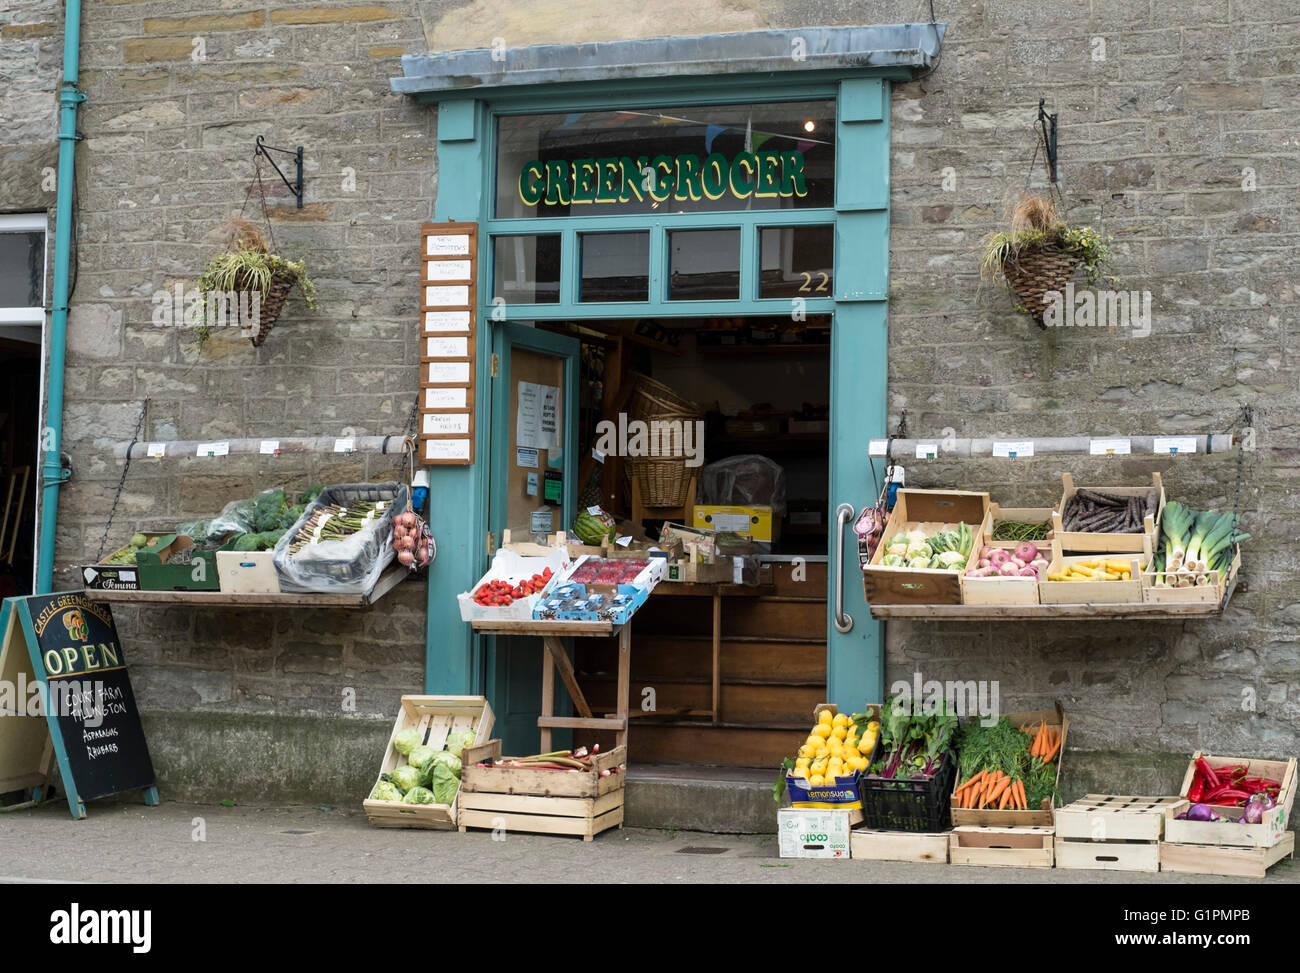 Hay-on-Wye a small town famous for book shops and a literary festival in Powys Wales UK. Hay Green Grocer - Stock Image